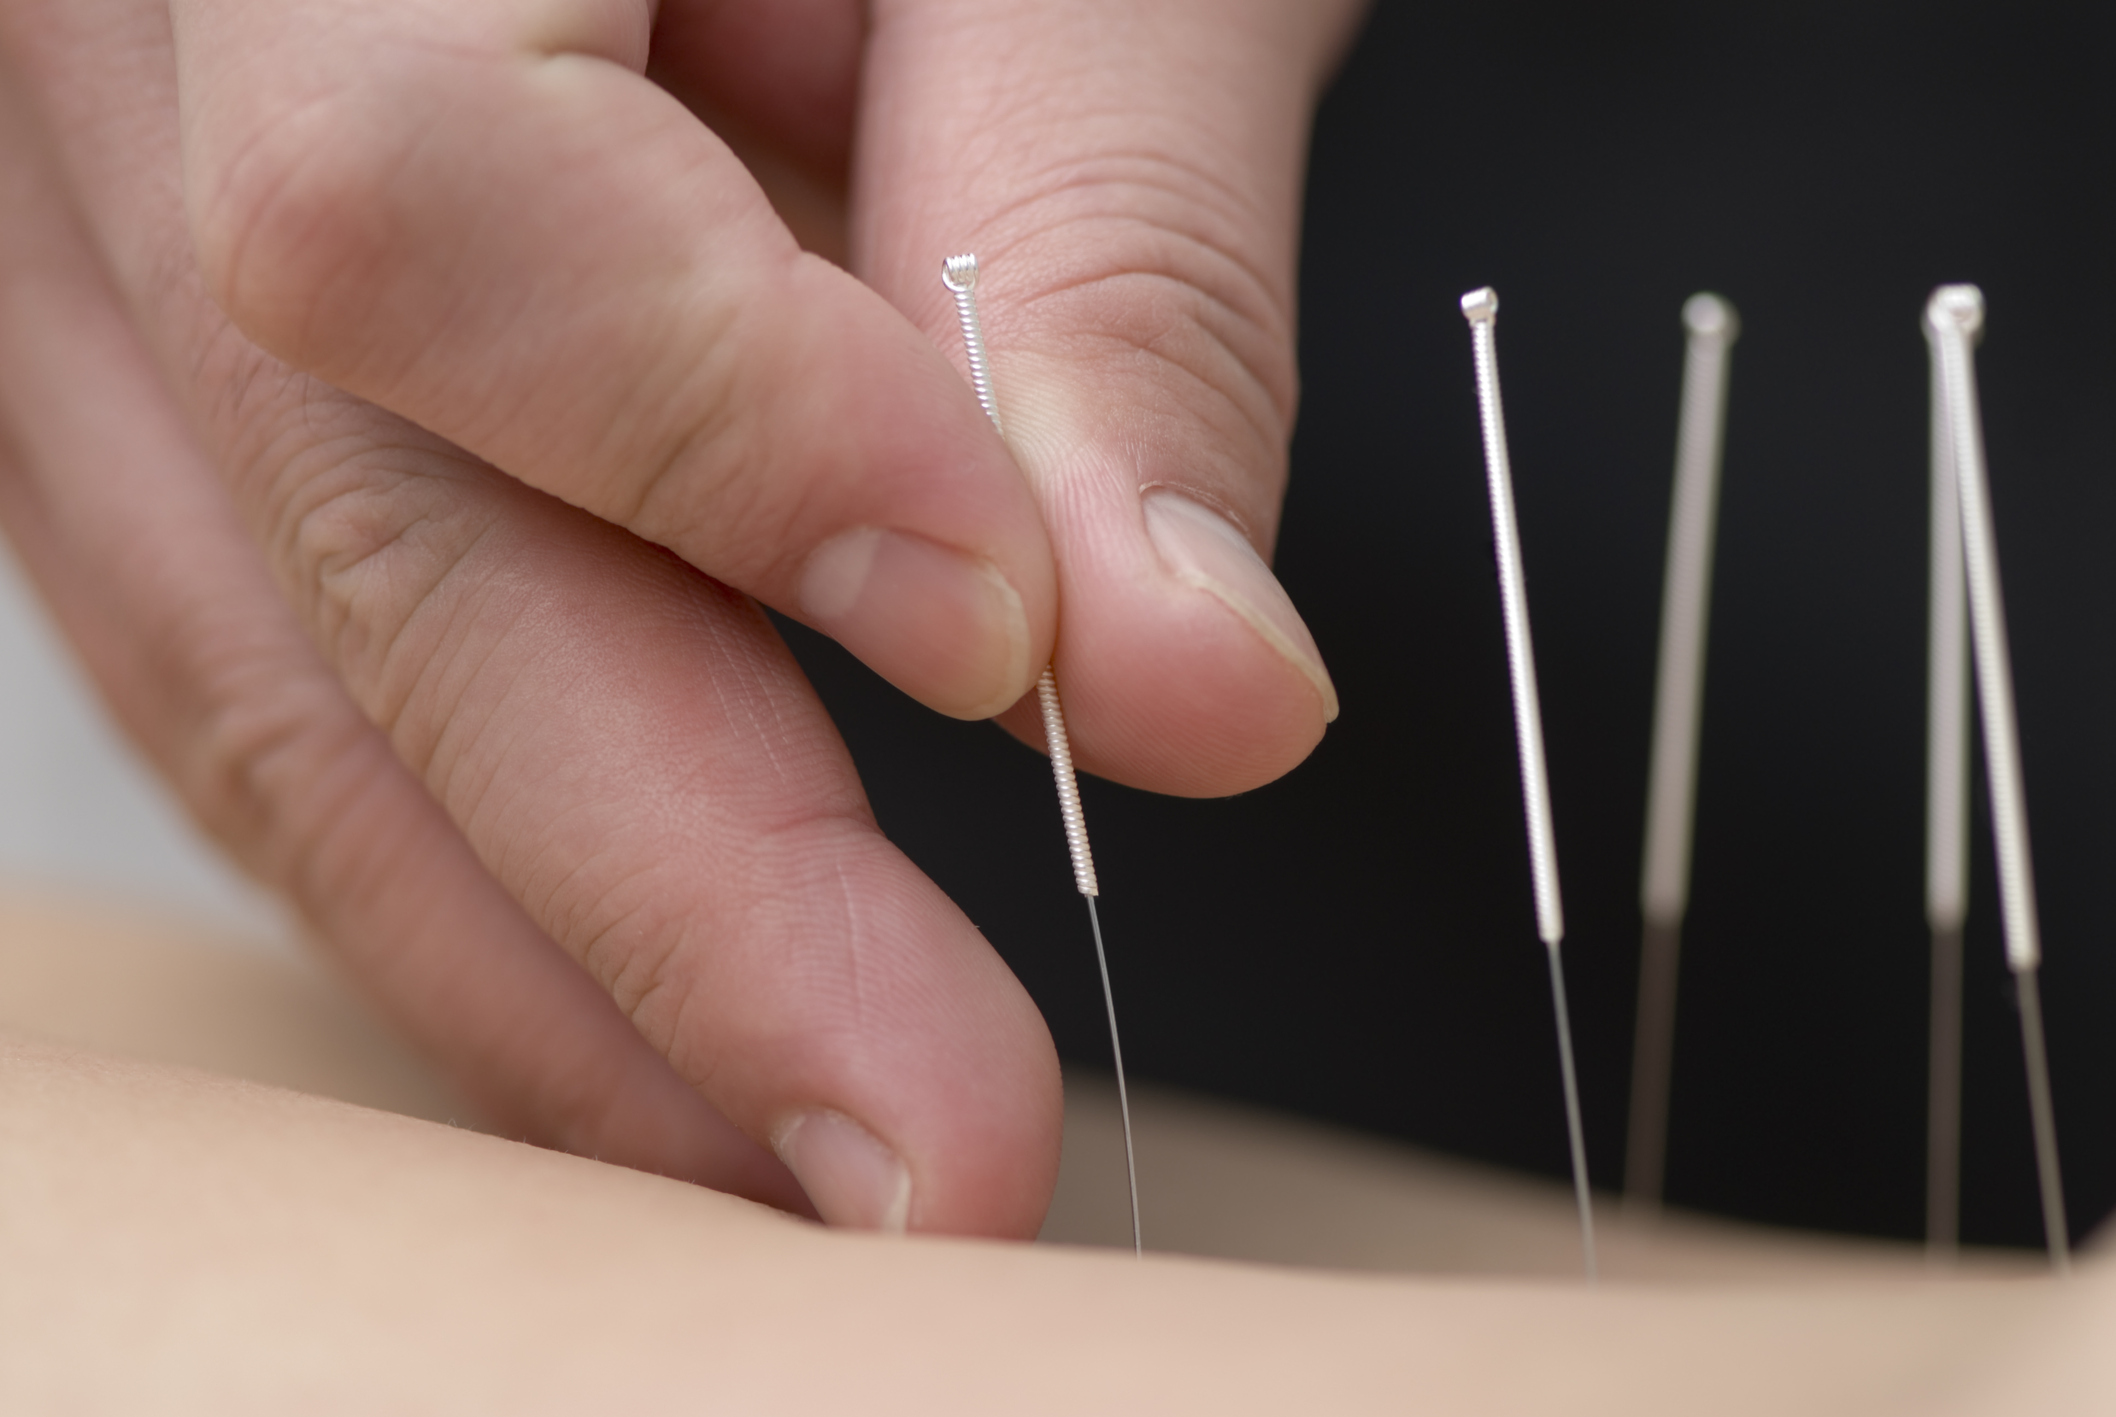 Acupuncture a point in the right direction or a stab in the dark acupuncture is a treatment that dates back to around 100 bc in china it is based on traditional chinese concepts such as qi pronounced chee and solutioingenieria